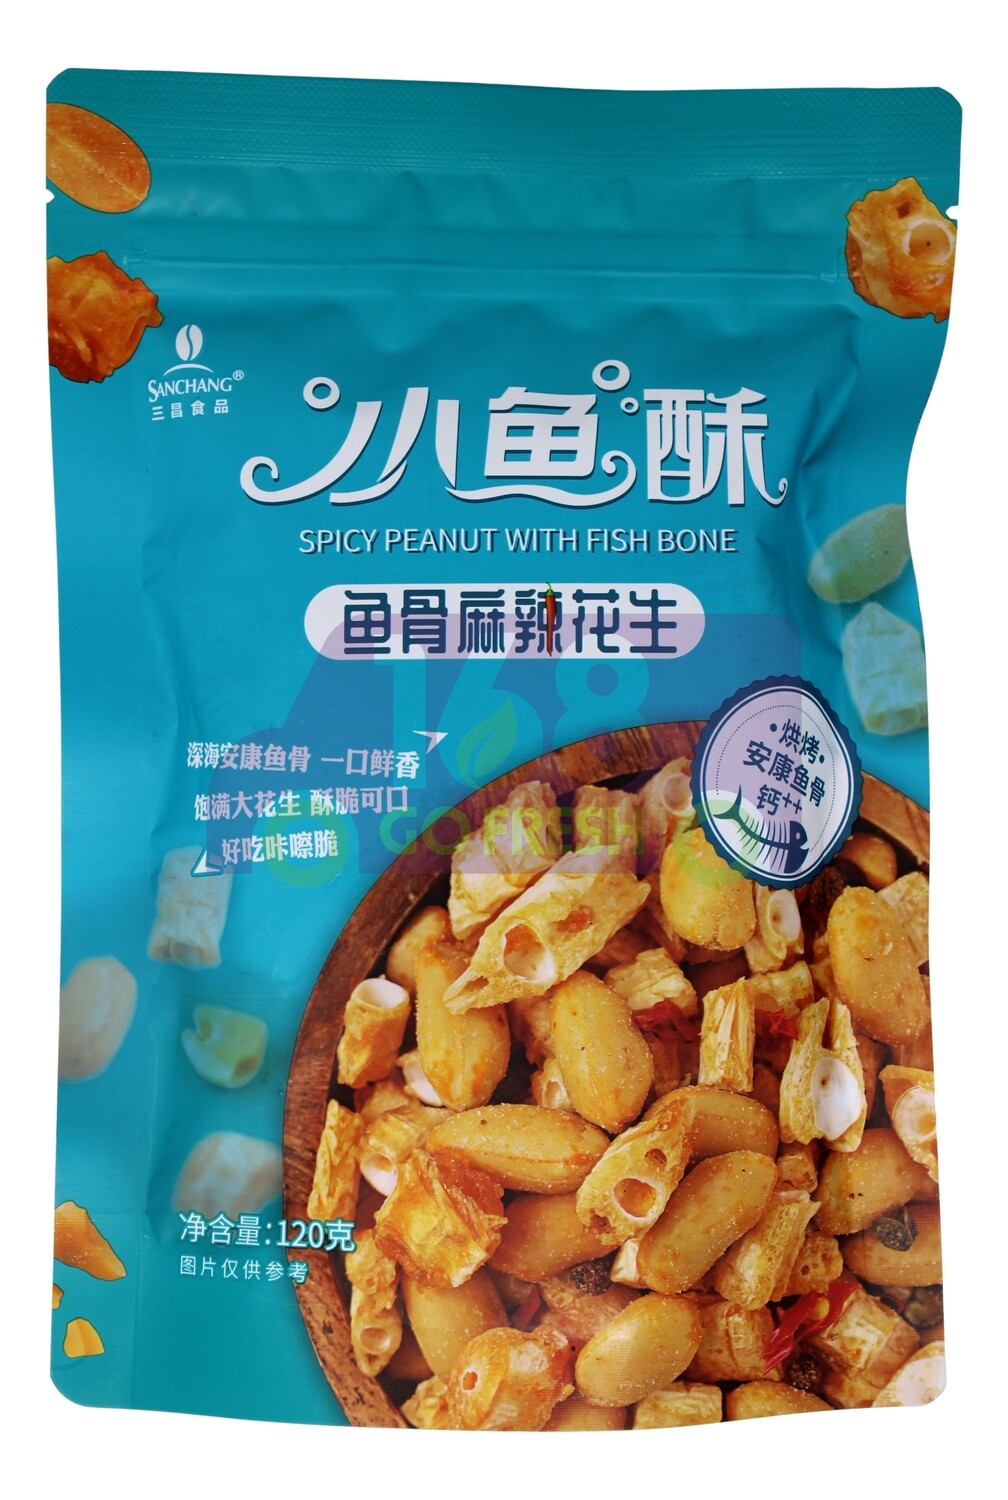 SPICY PEANUTS WITH DRIED SHRIMPS 小鱼酥 鱼骨麻辣花生(120G)